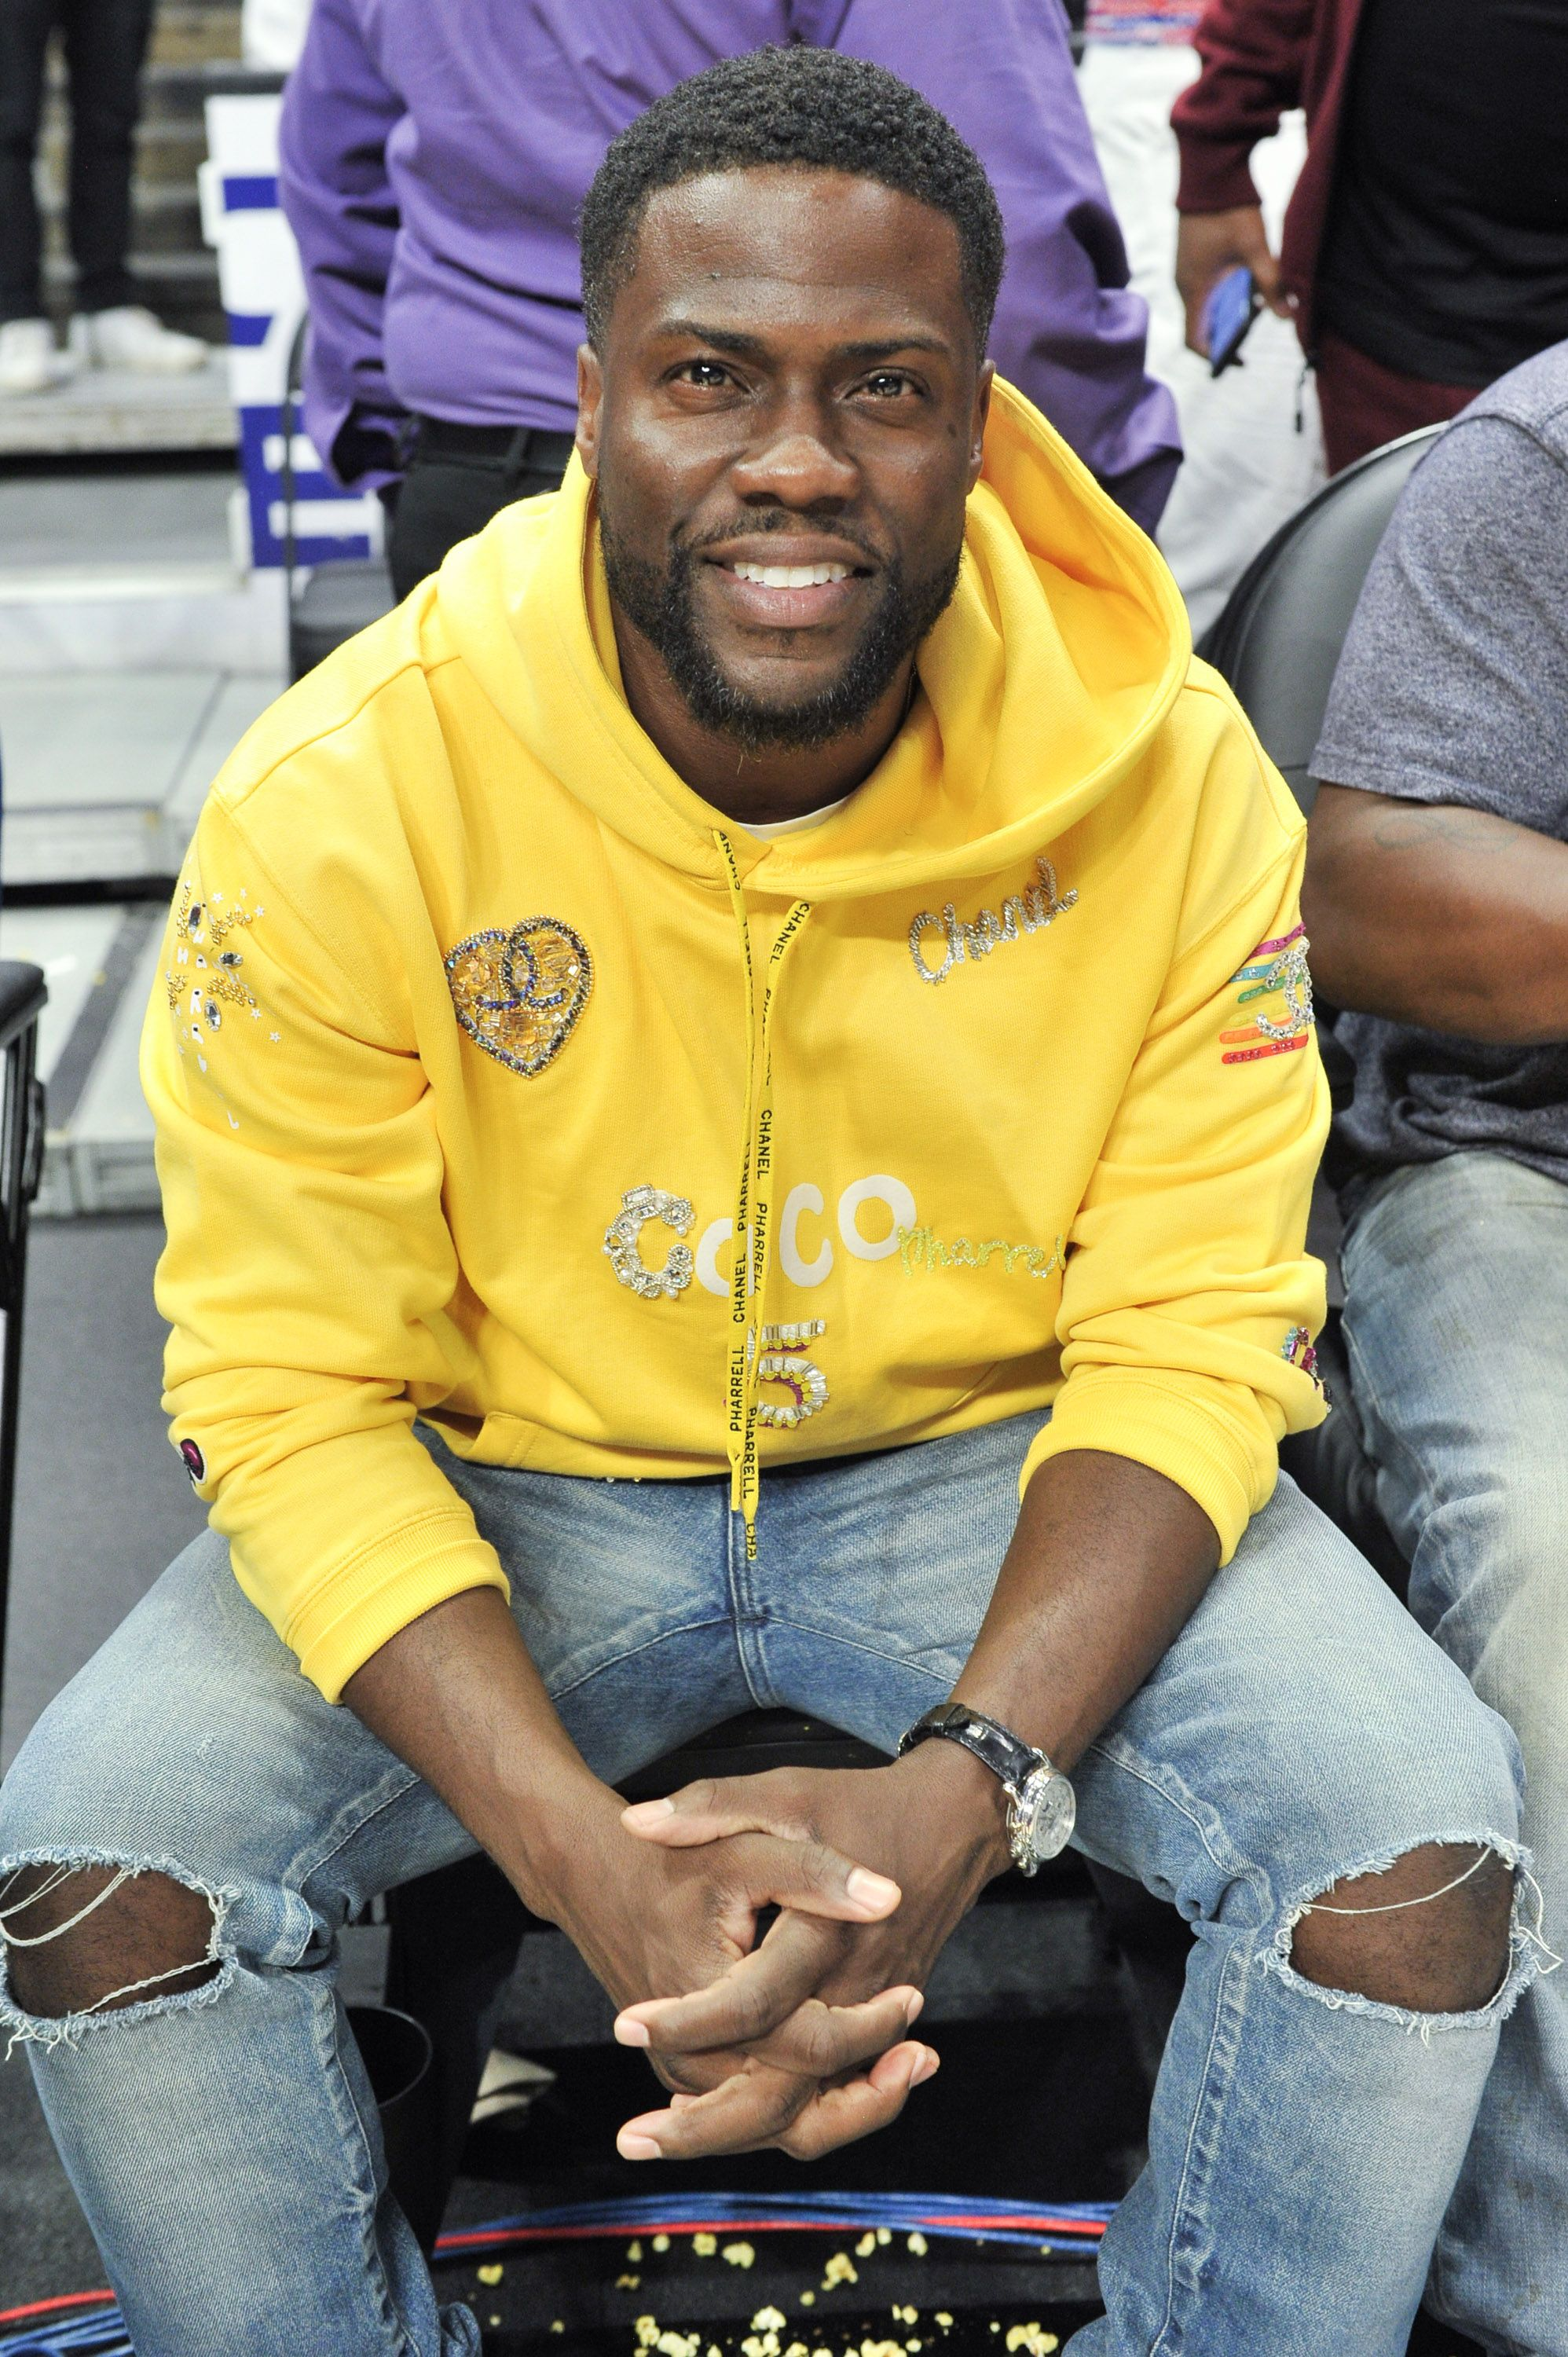 Kevin Hart attends a basketball game between the Los Angeles Clippers and the Toronto Raptors at Staples Center on November 11, 2019 in Los Angeles, California.  | Source: Getty Images